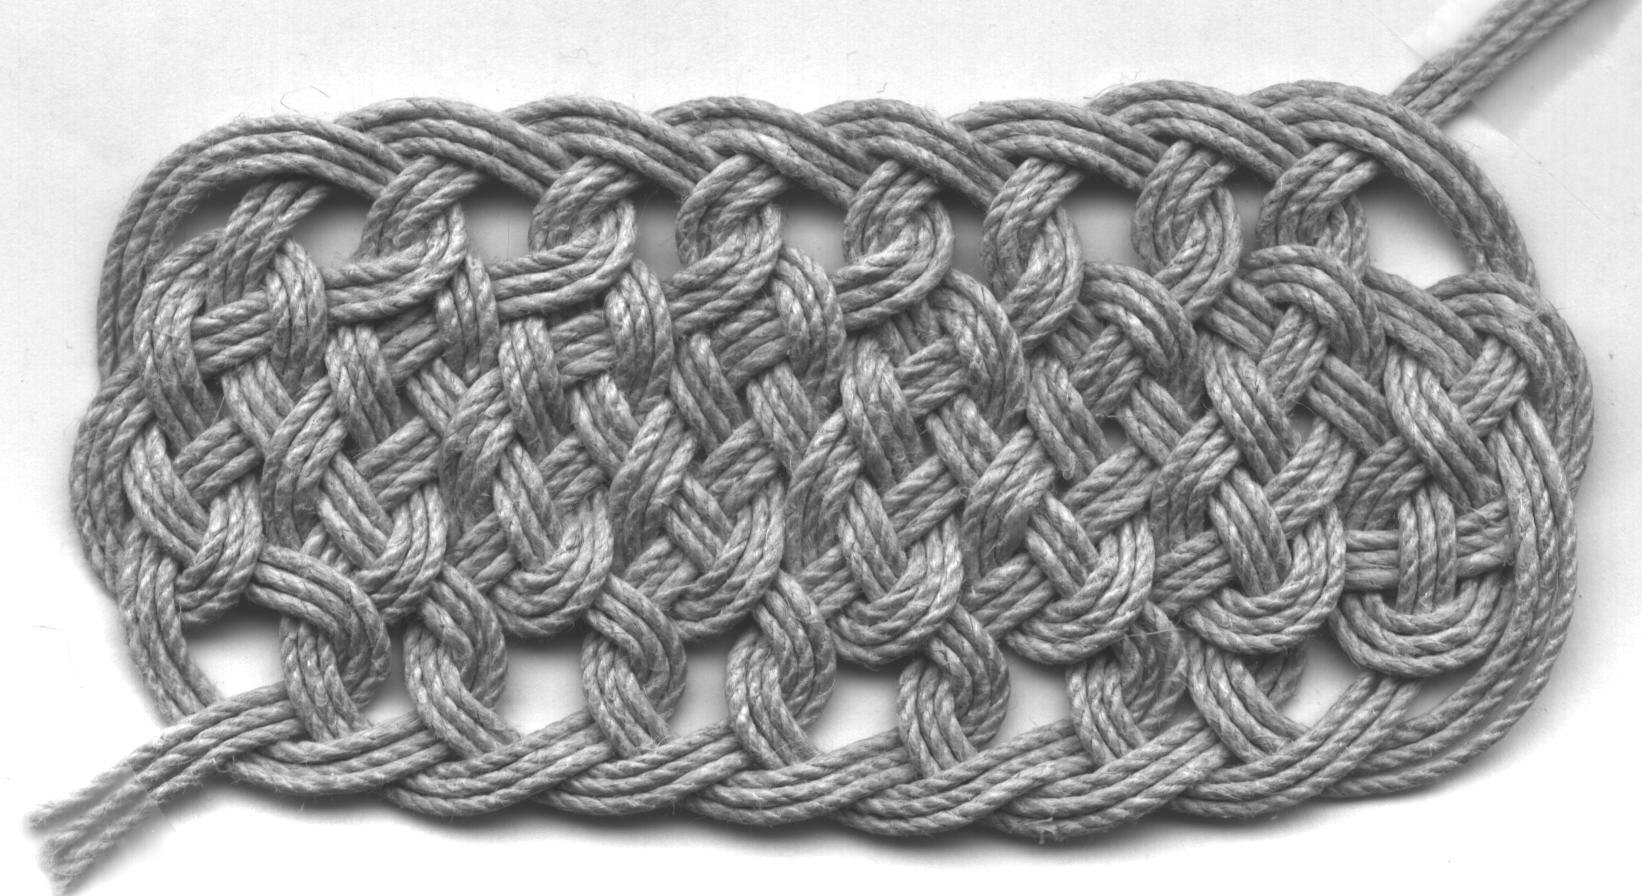 Woven Rope Friezes Mathematical Association Of America